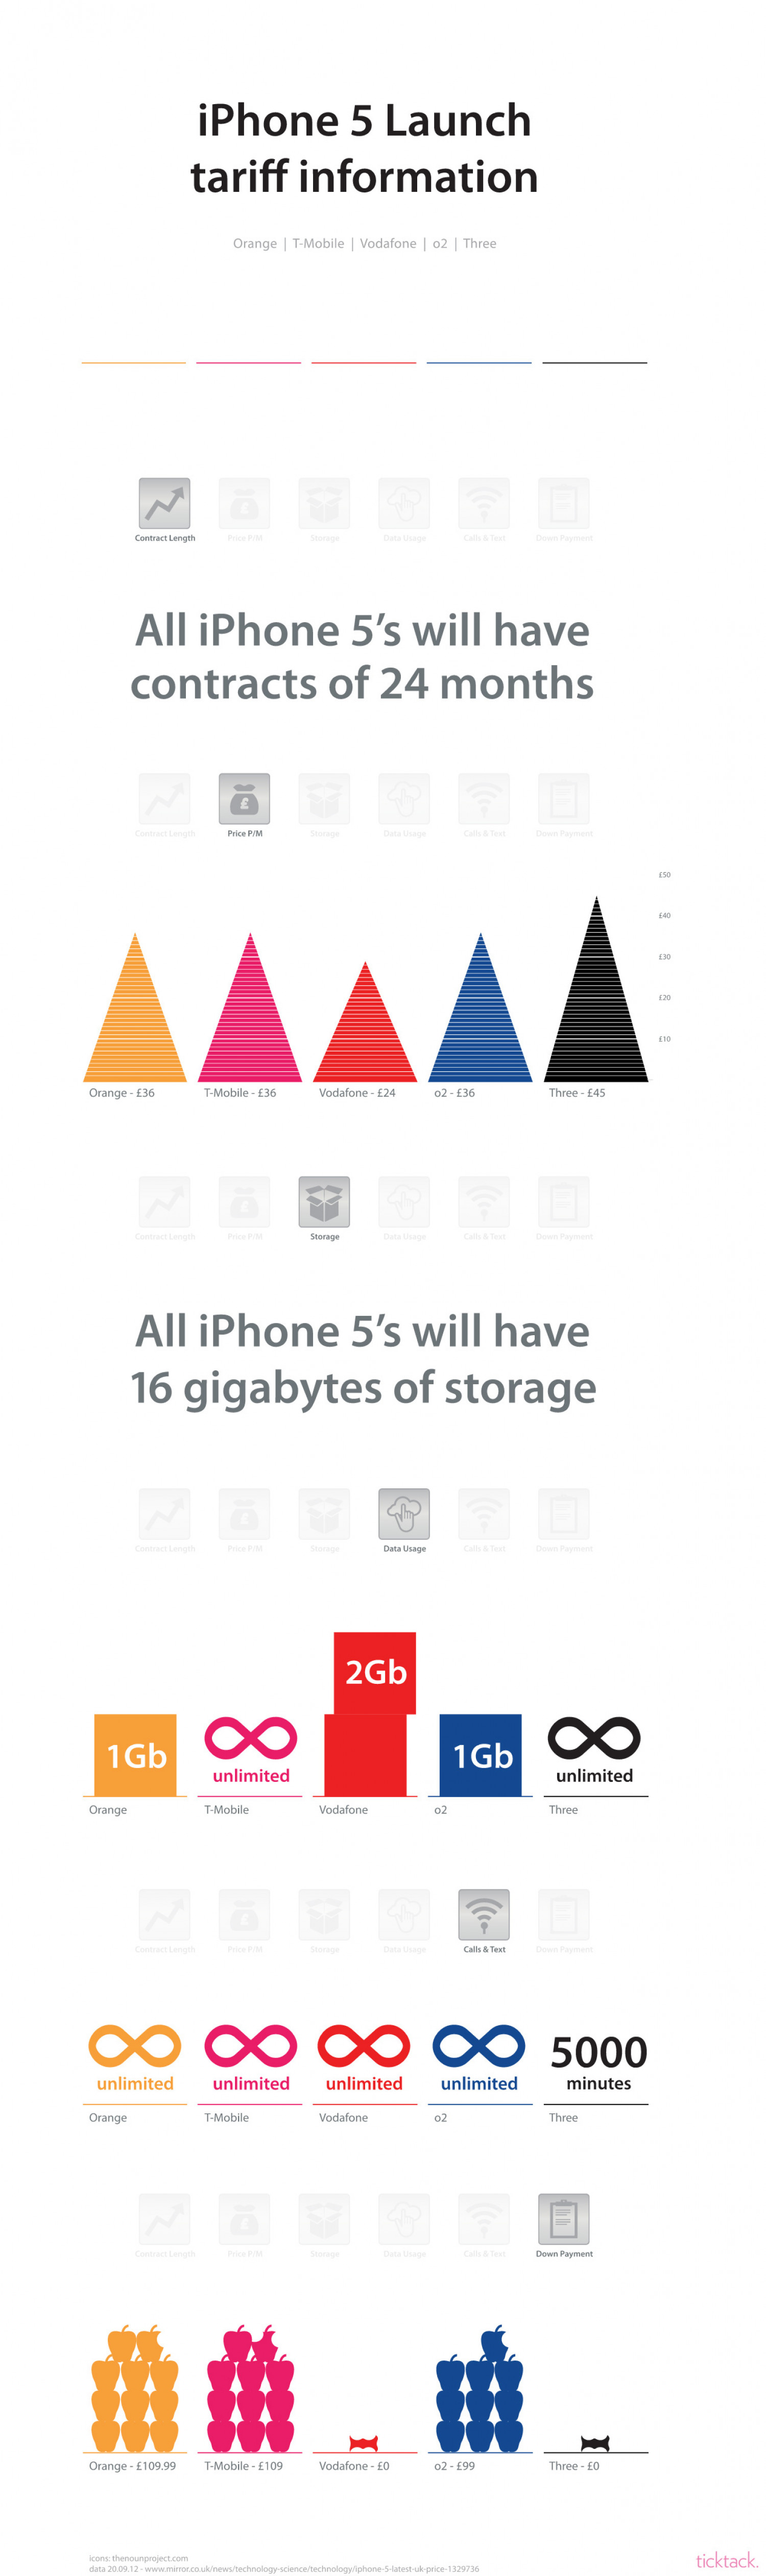 iPhone 5 - Uk Tariff  Infographic